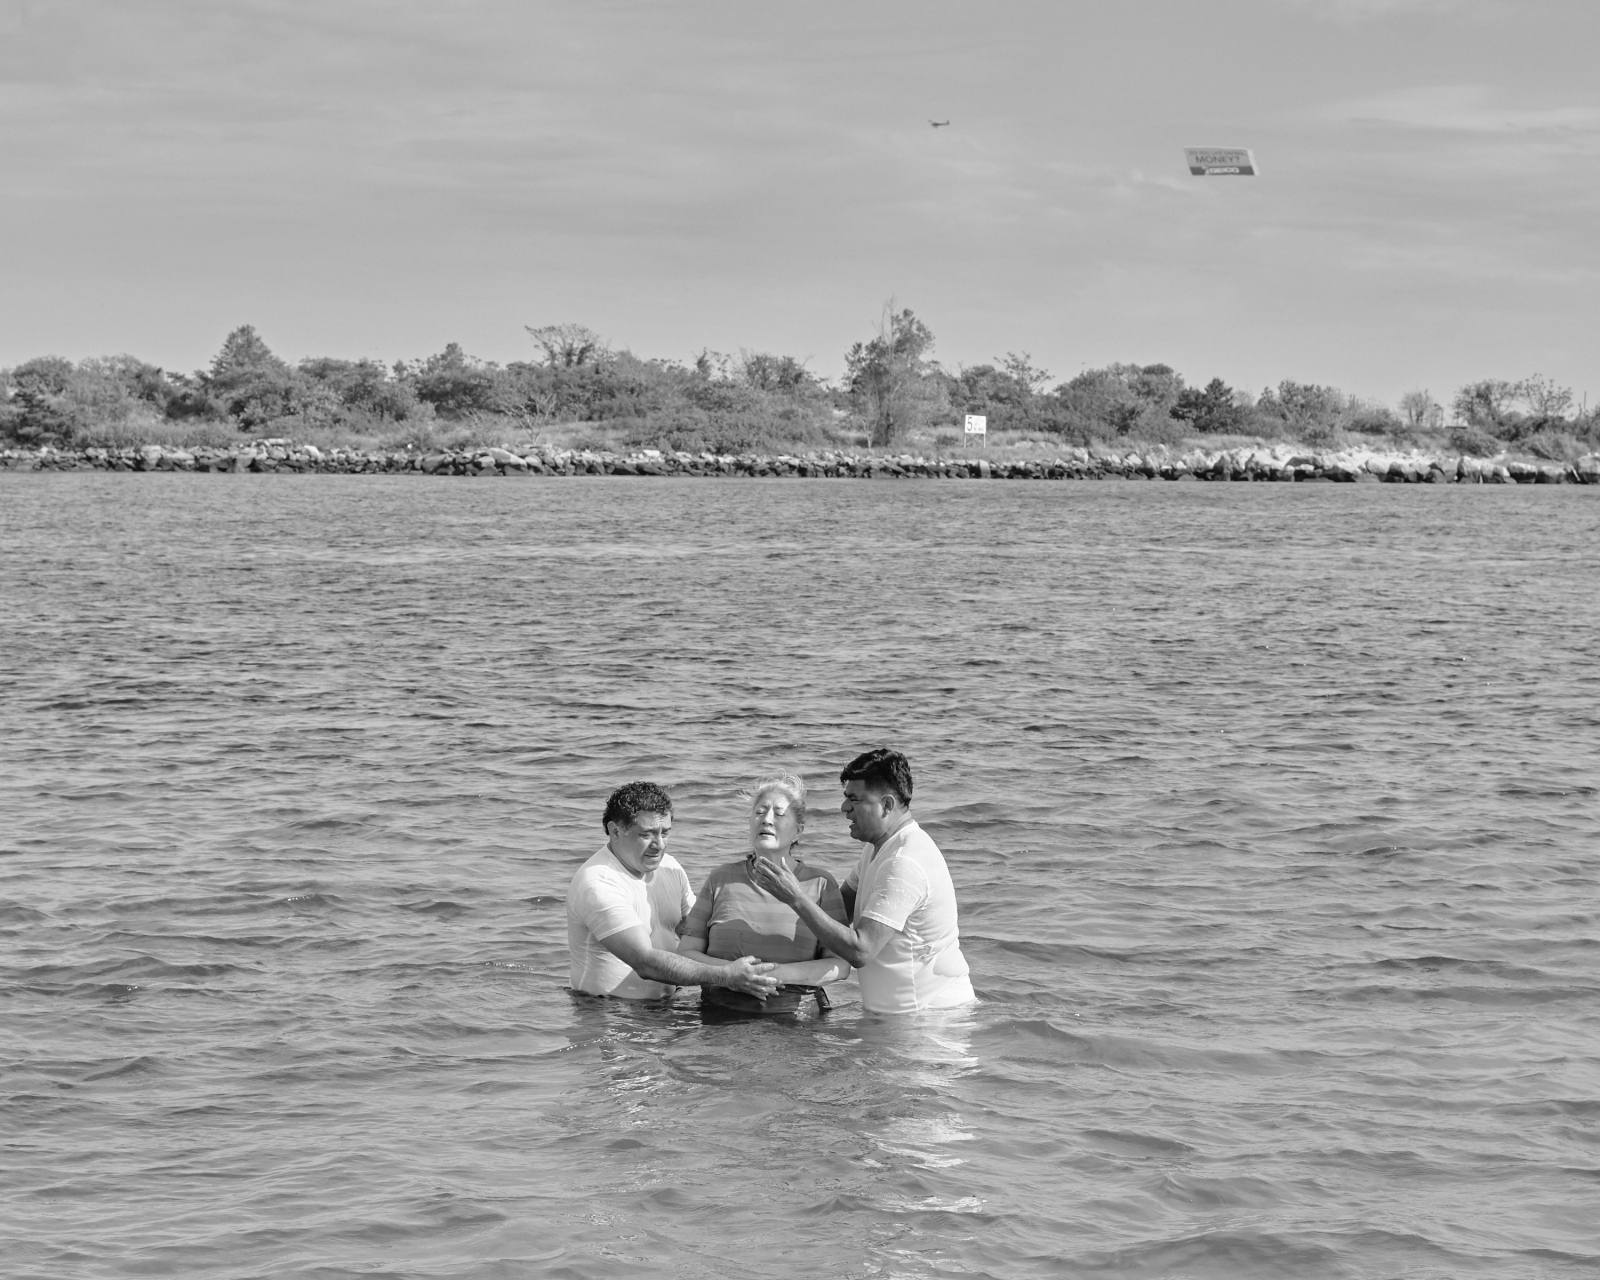 A group of evangelical celebrates a baptism in a Sunday morning, over the Reynolds Channel in Far Rockaway.